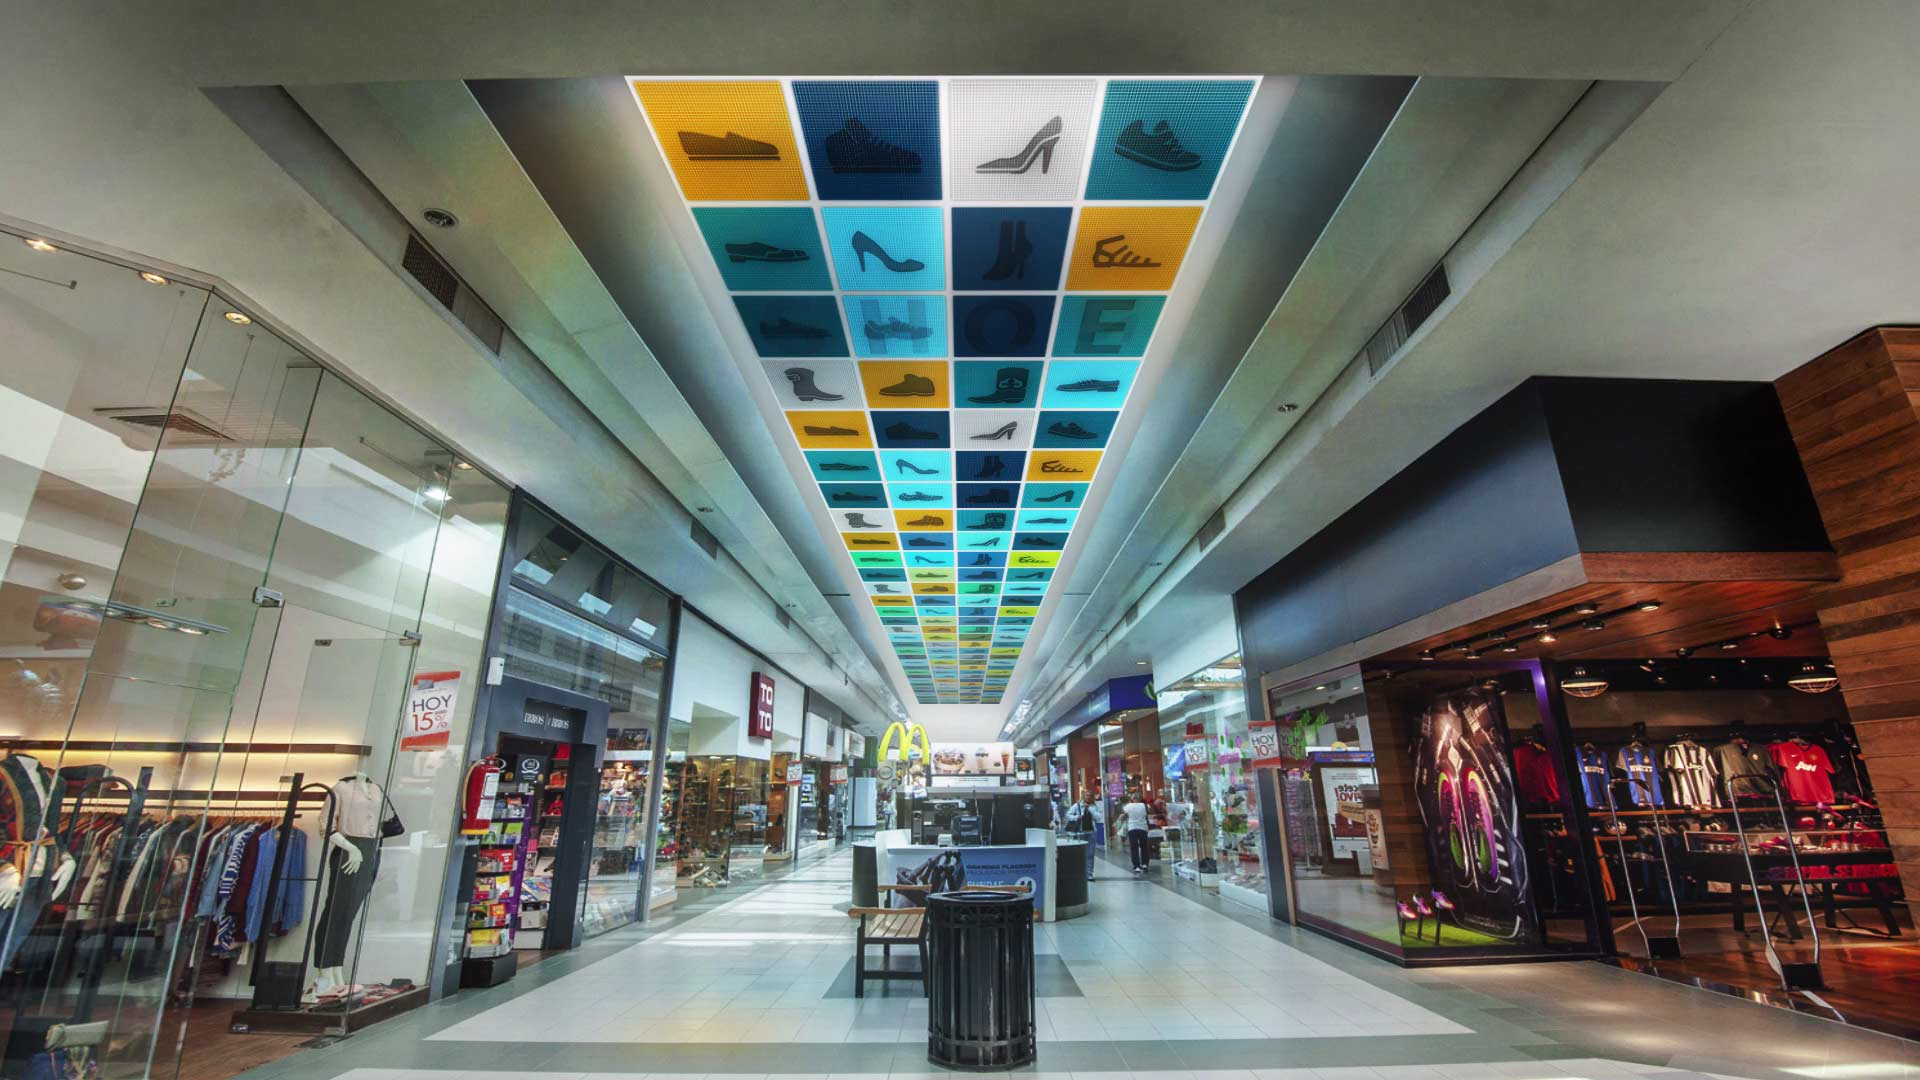 Dutch Firms Led Panels Replace Regular Acoustic Tiles To Create